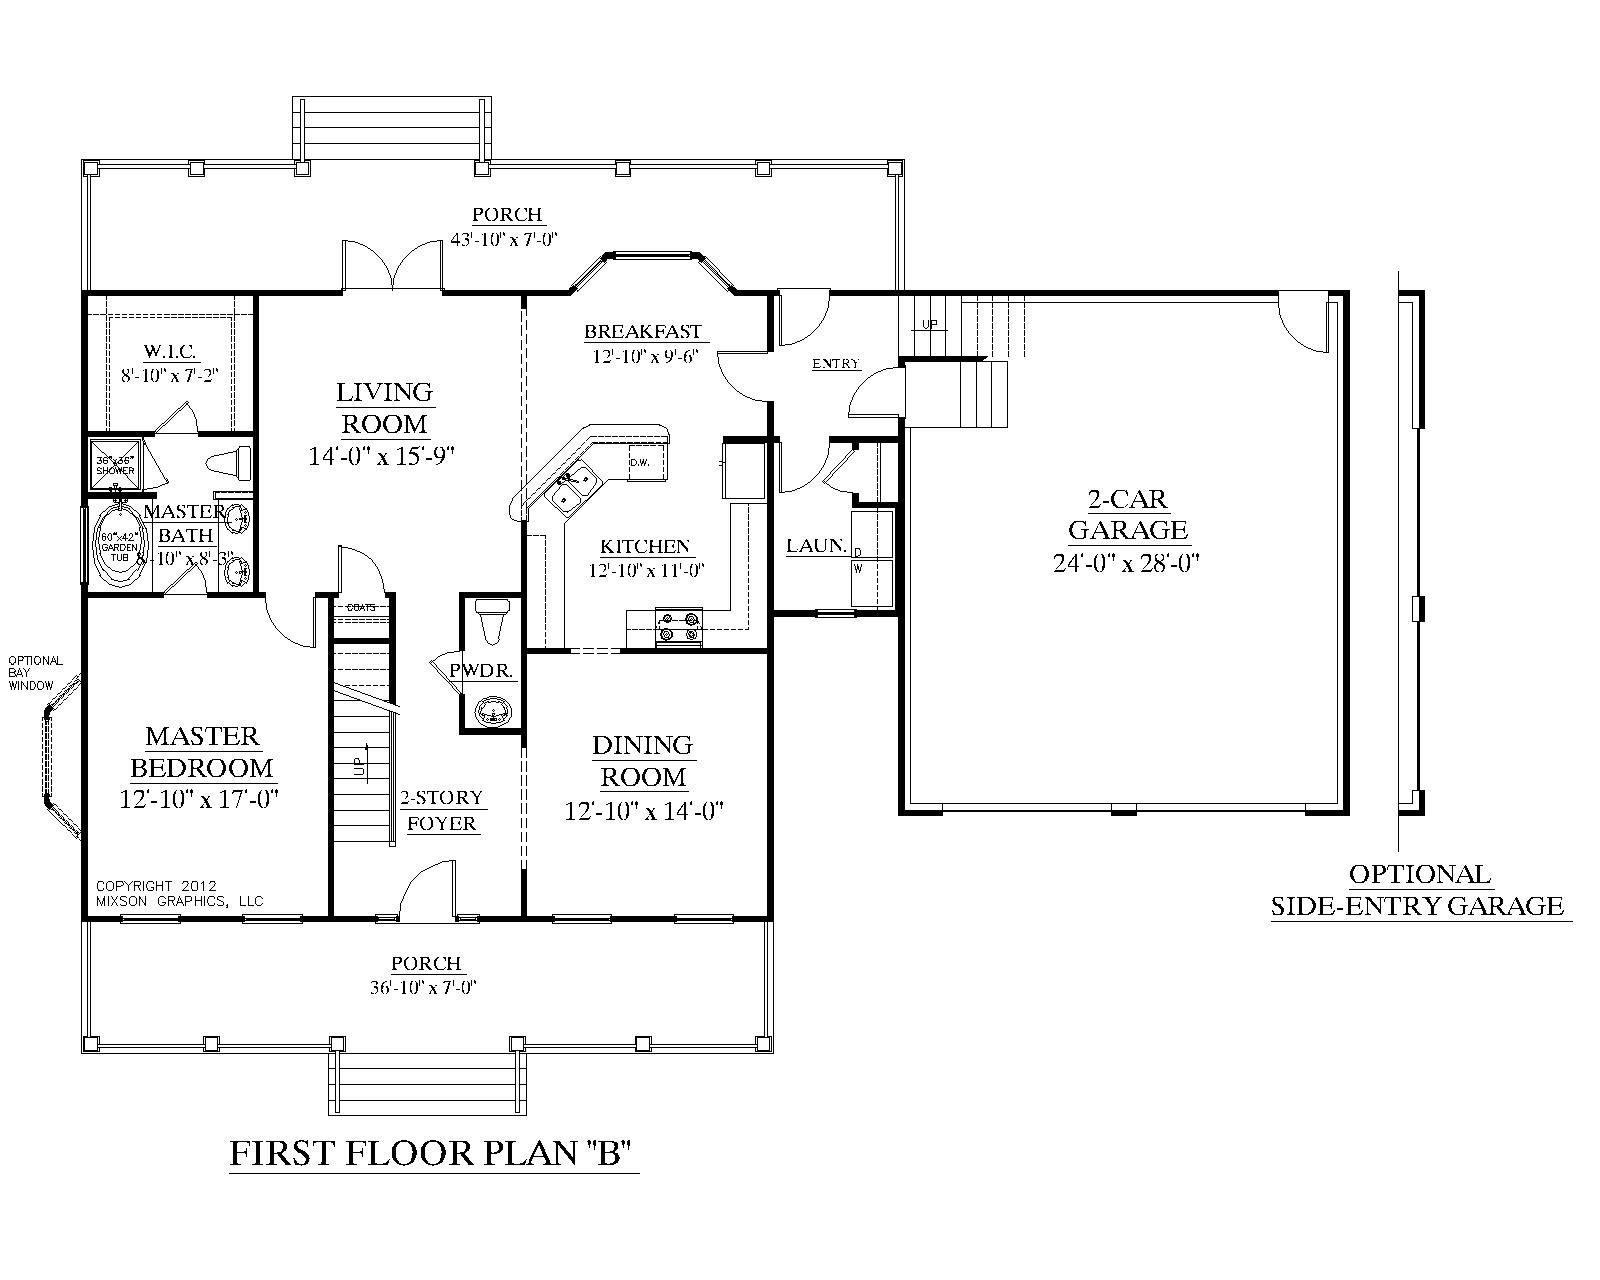 House Plan 2109 B Mayfield B First Floor Plan Colonial Cottage 1 1 2 Story Design With Three Master Bedroom Plans Cape House Plans Bedroom Addition Plans